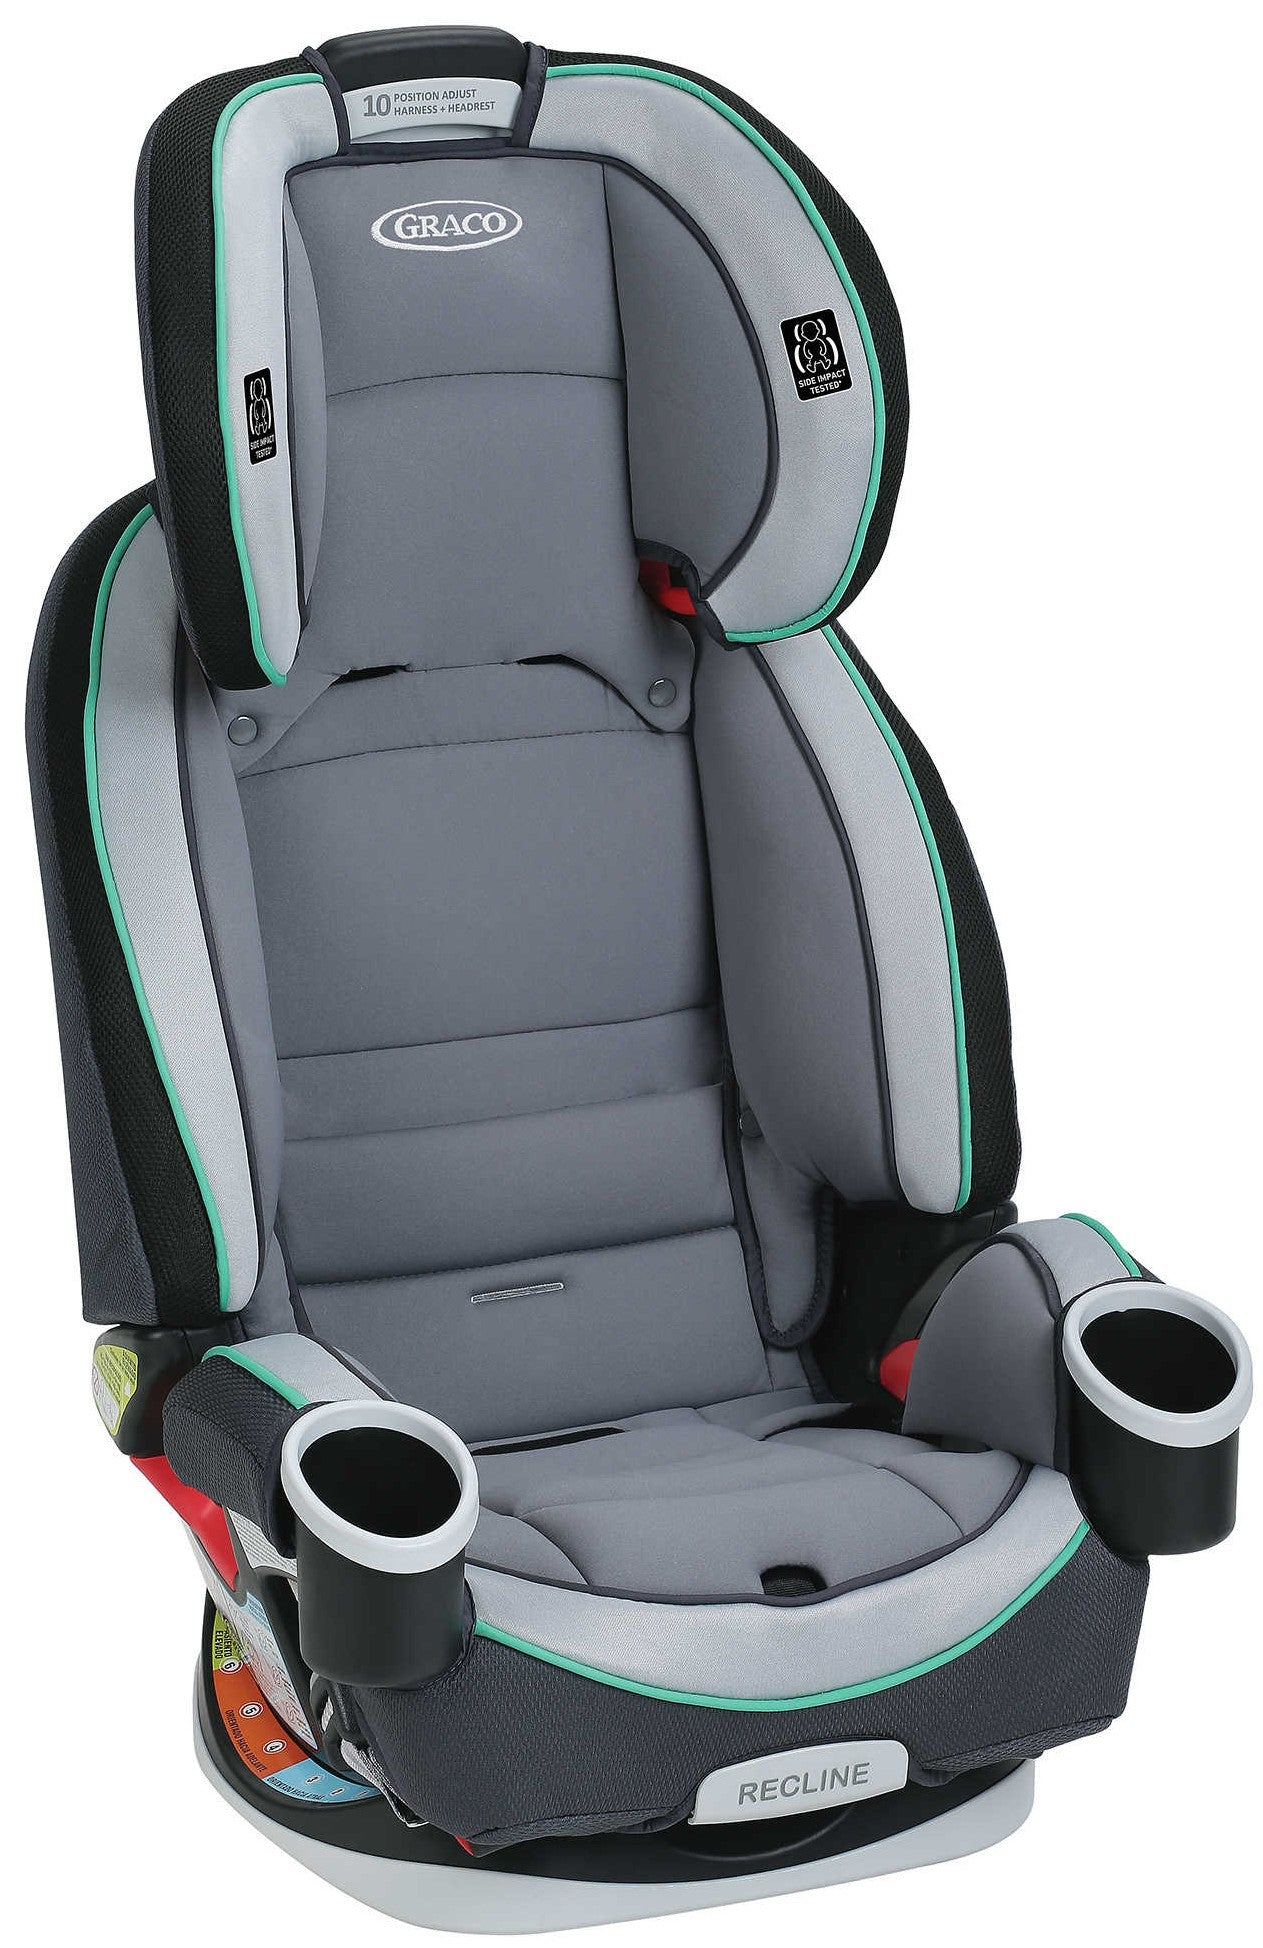 Buy Graco 4ever All-in-One Car Seat (Basin) Online 1991921 ...